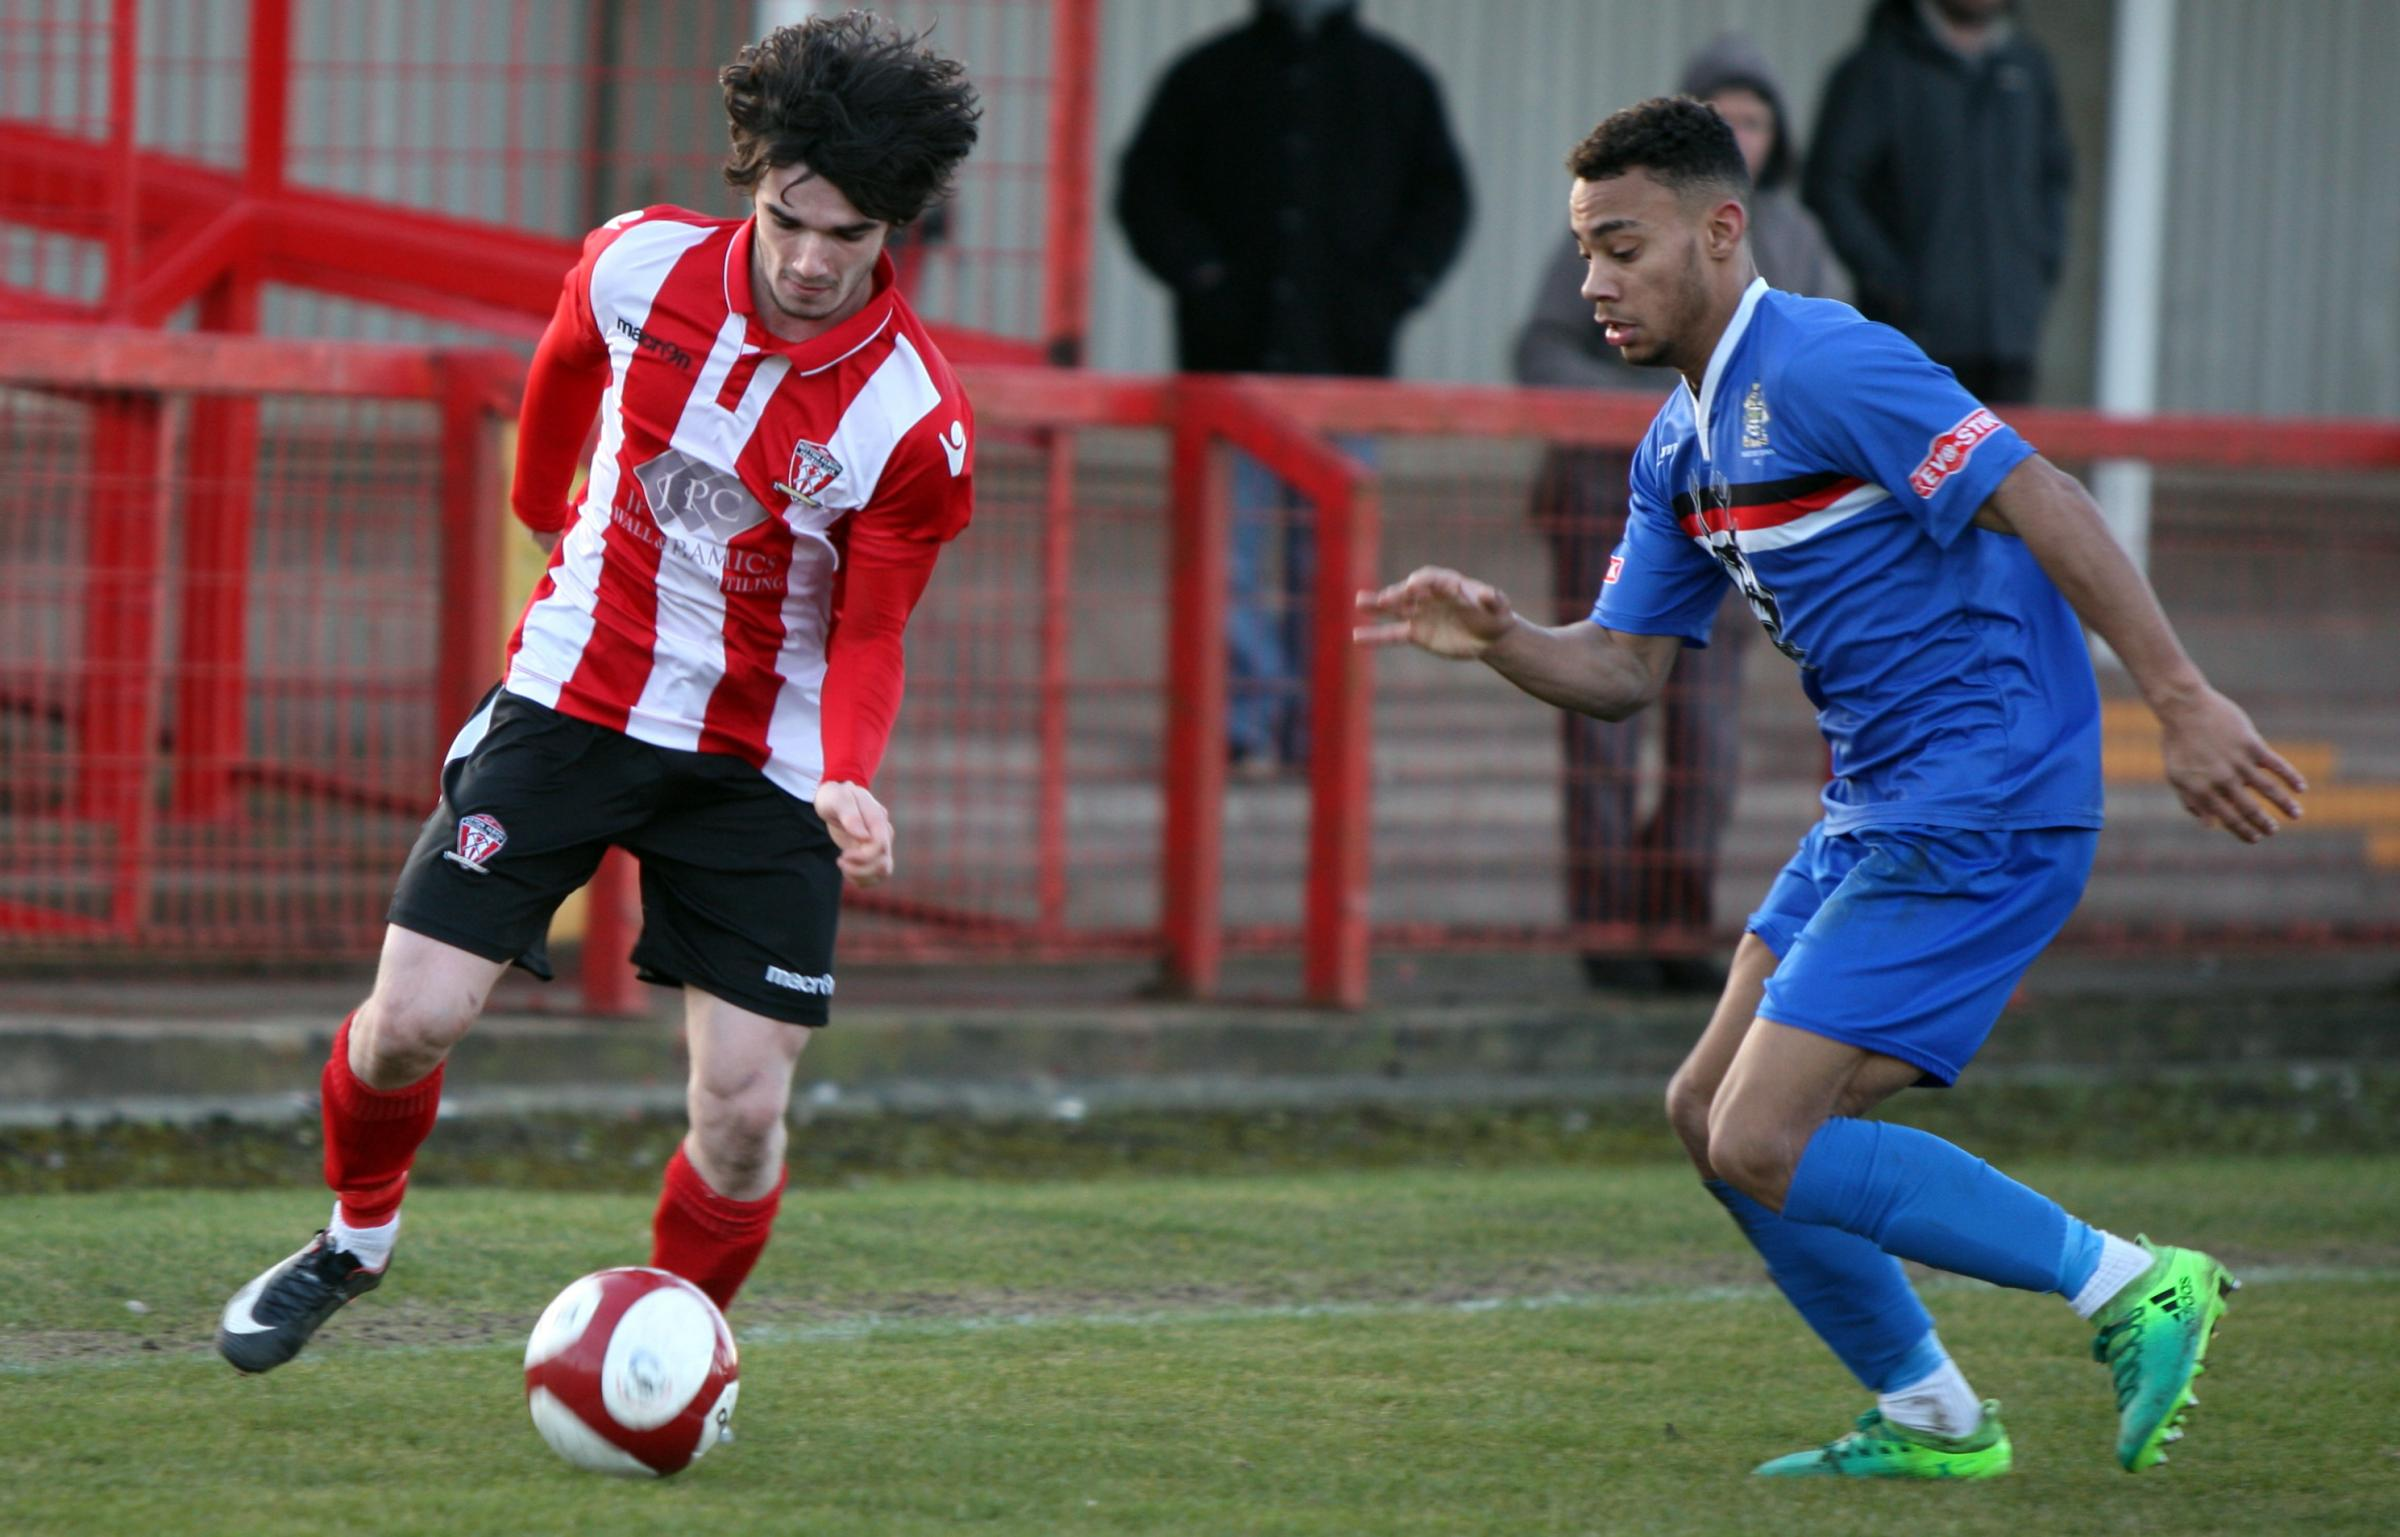 Danny McKenna and his Witton Albion teammates resume their bid to reach the promotion play-offs when Shaw Lane visit this weekend. Picture: Keith Clayton